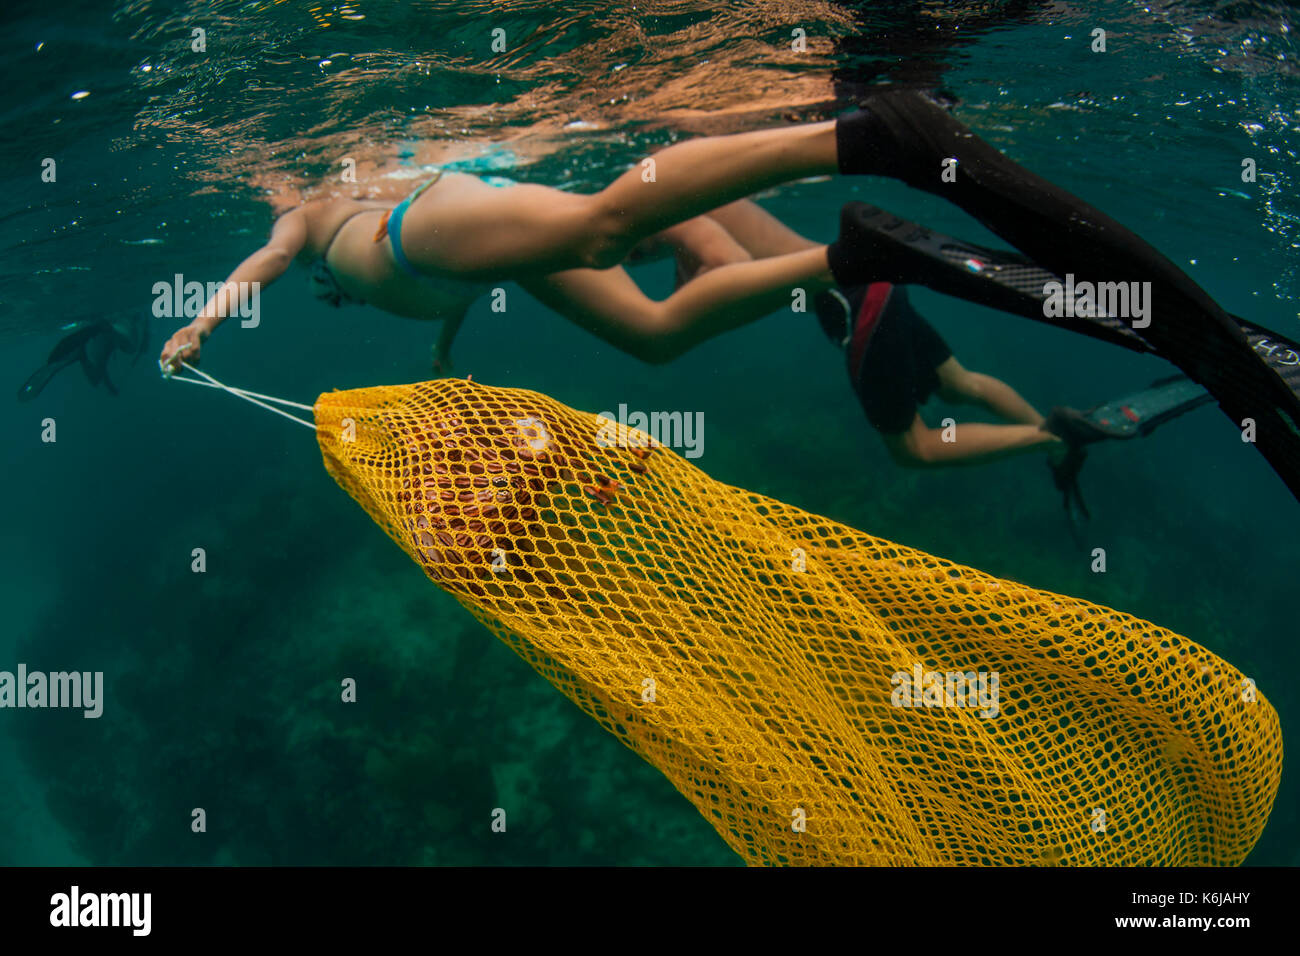 Woman handling bagged lion fish after spearing it, Atlantic Ocean - Stock Image